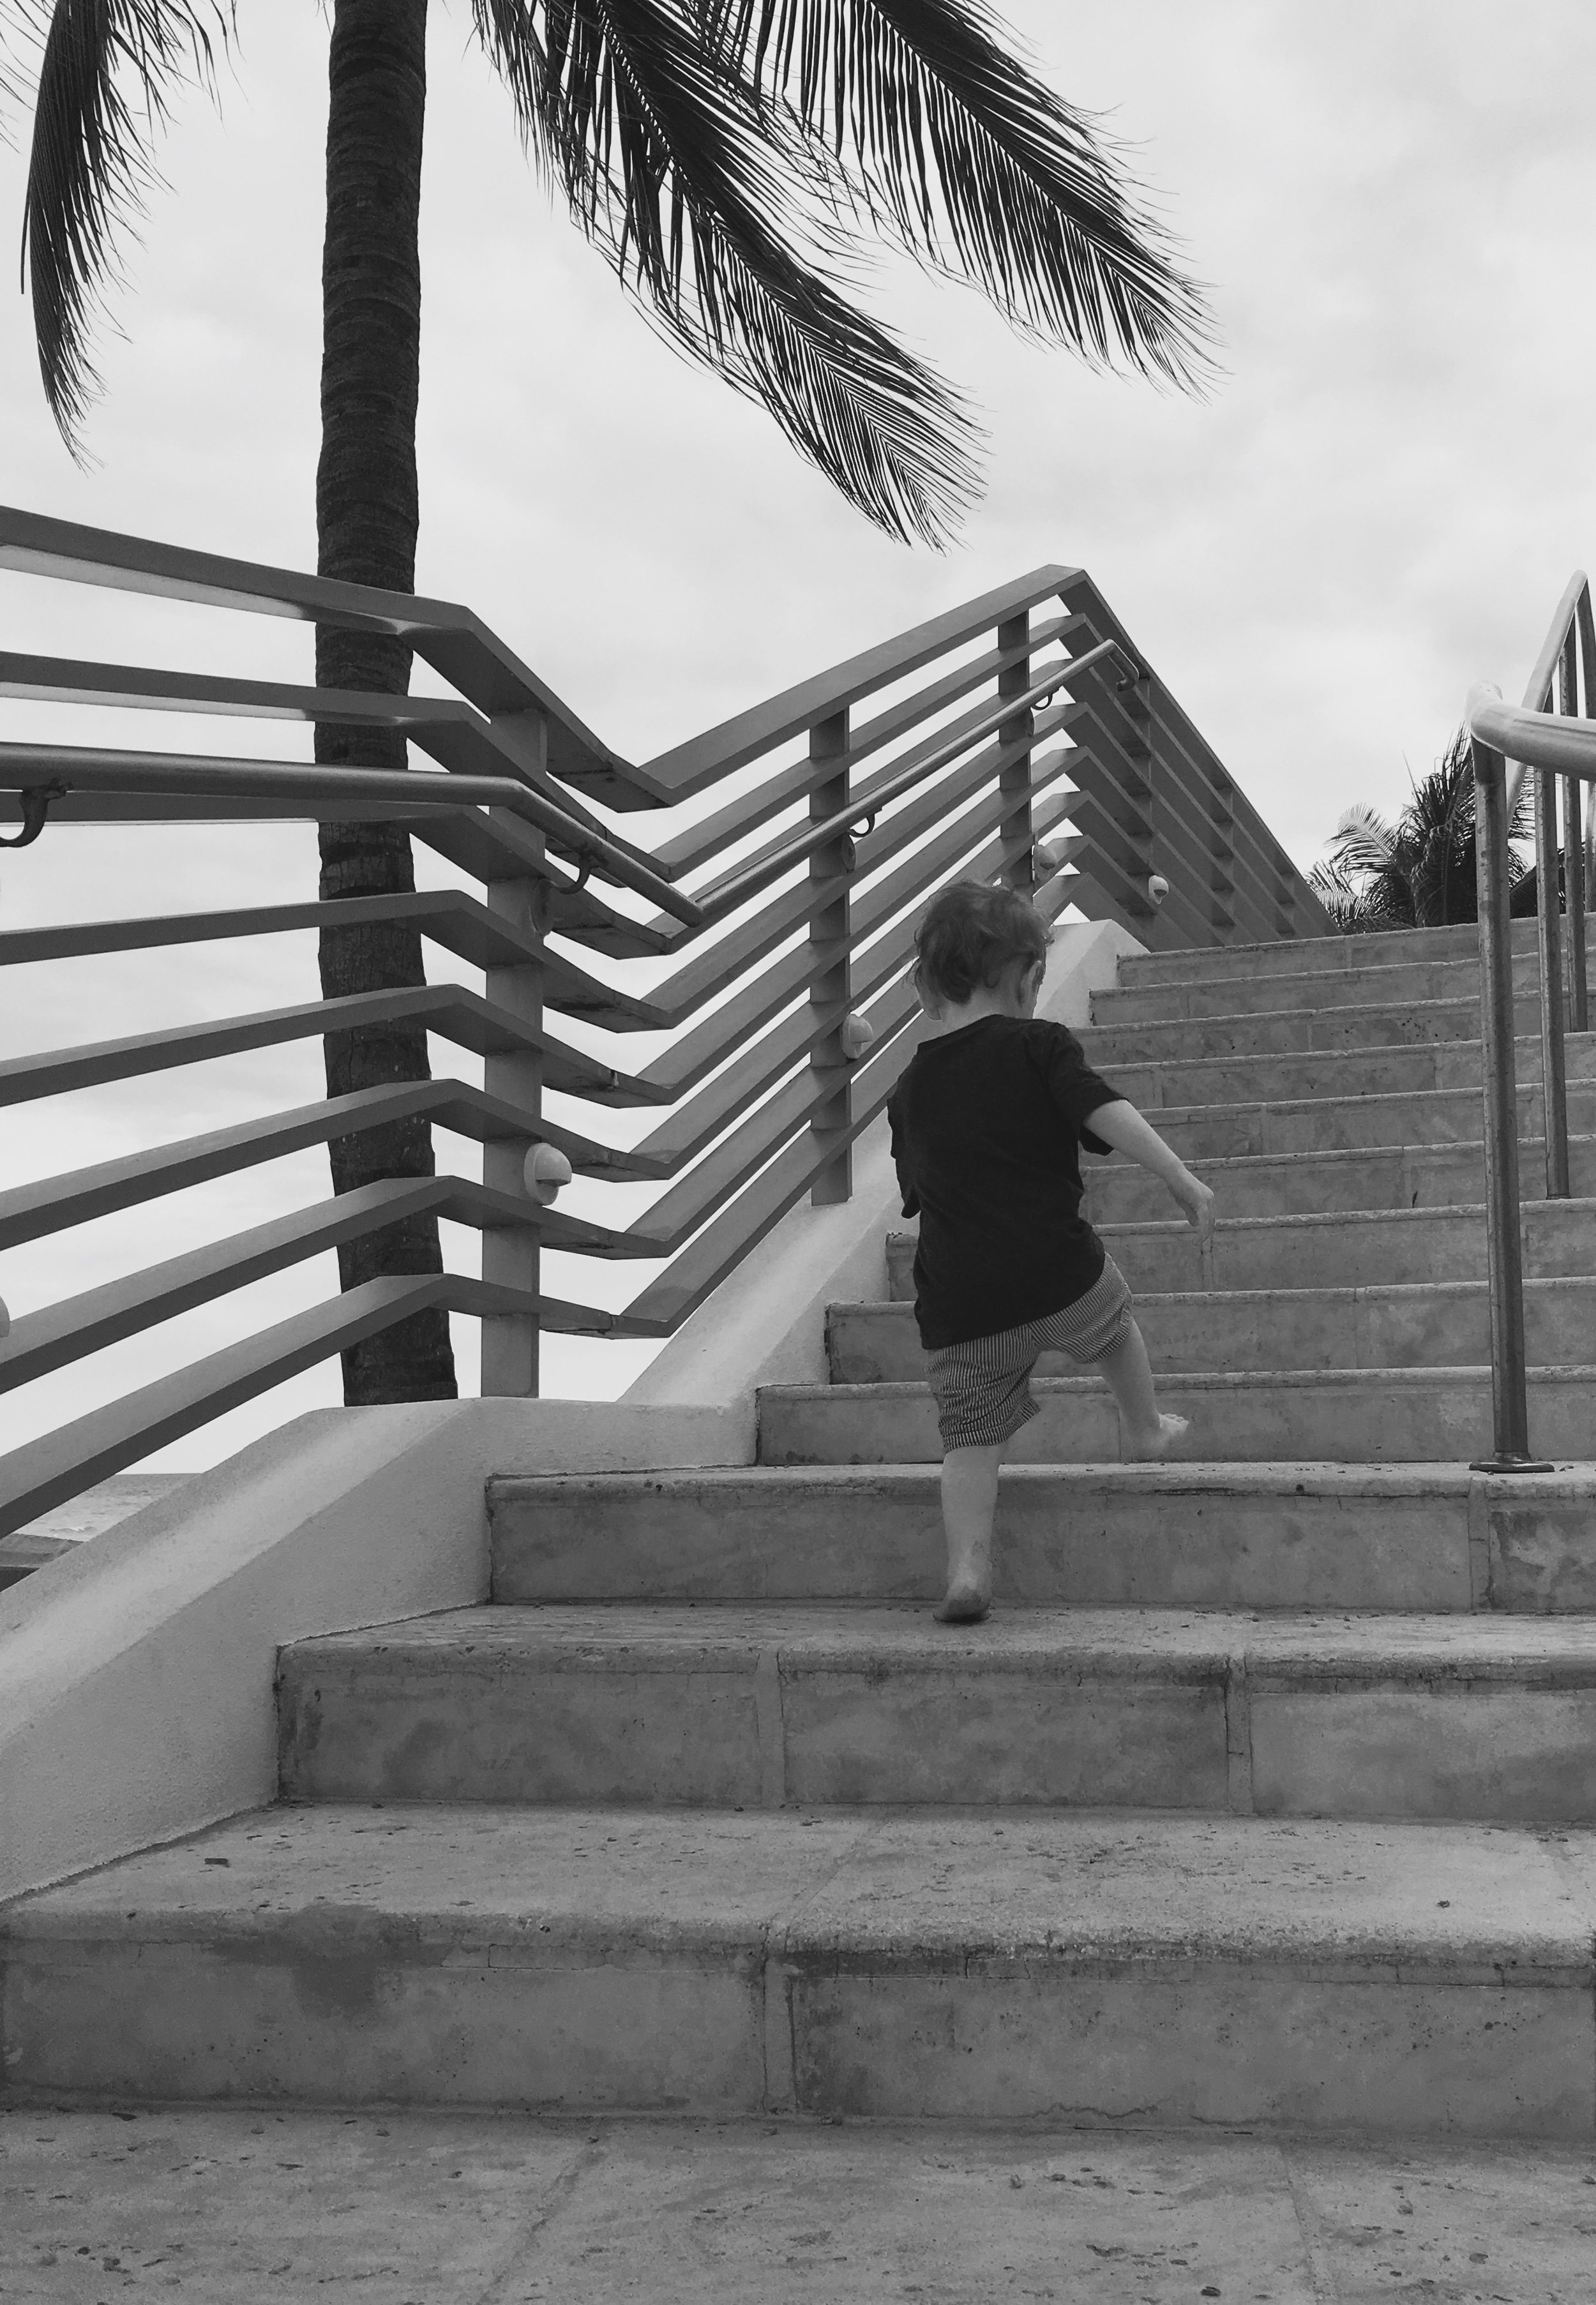 Stepping back helps you stop hovering and capture kiddo's first solo climb in all its terrifying grandeur.